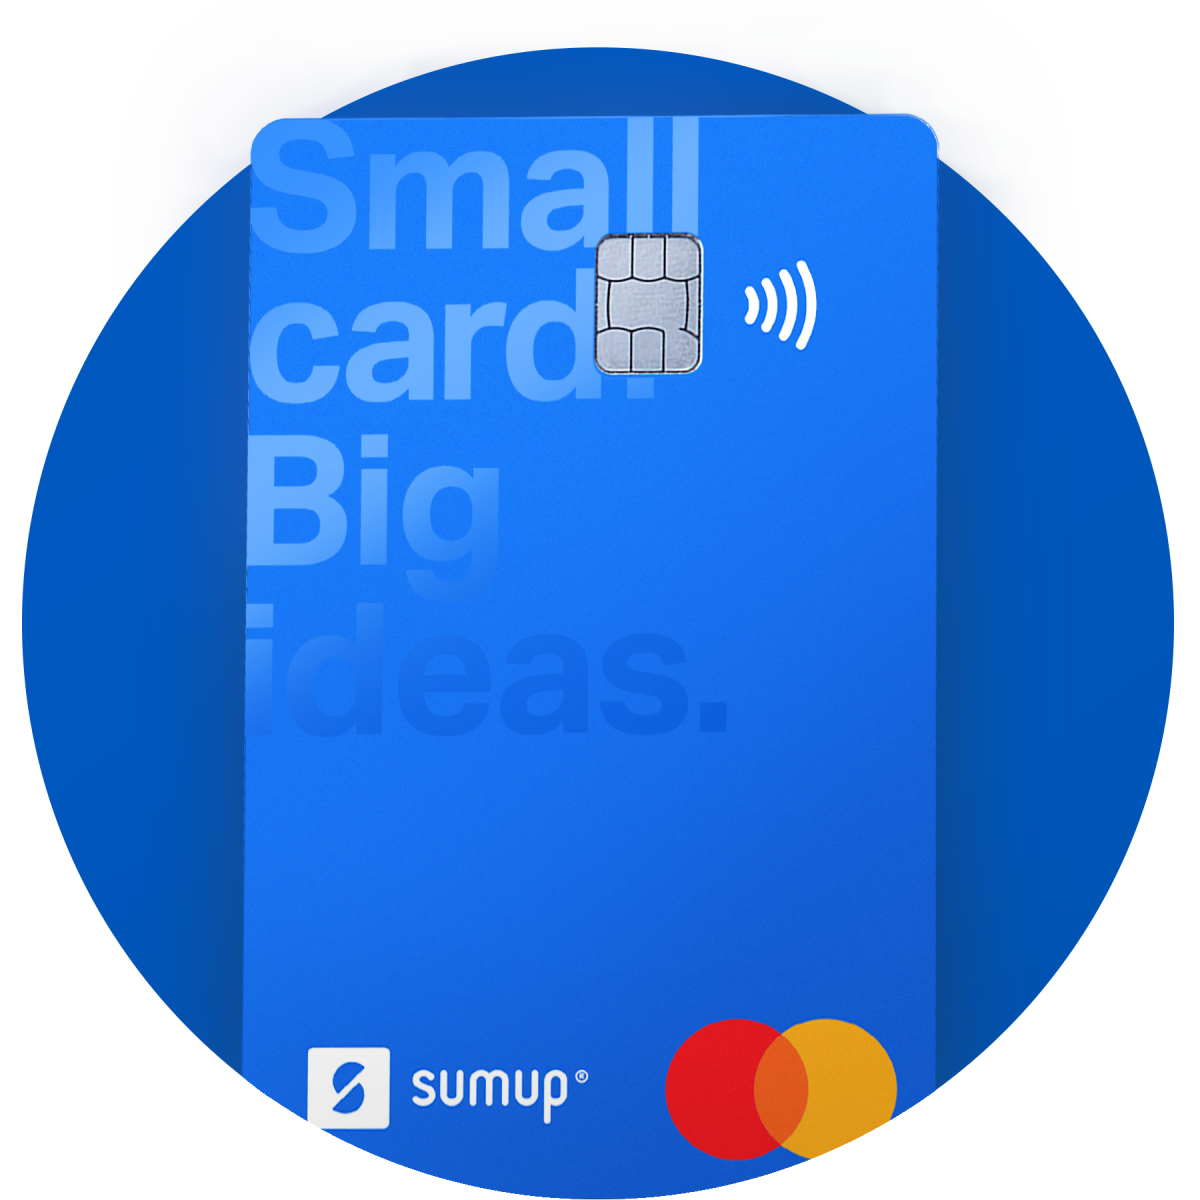 sumup credit cards falling in front of card readers on a blue background